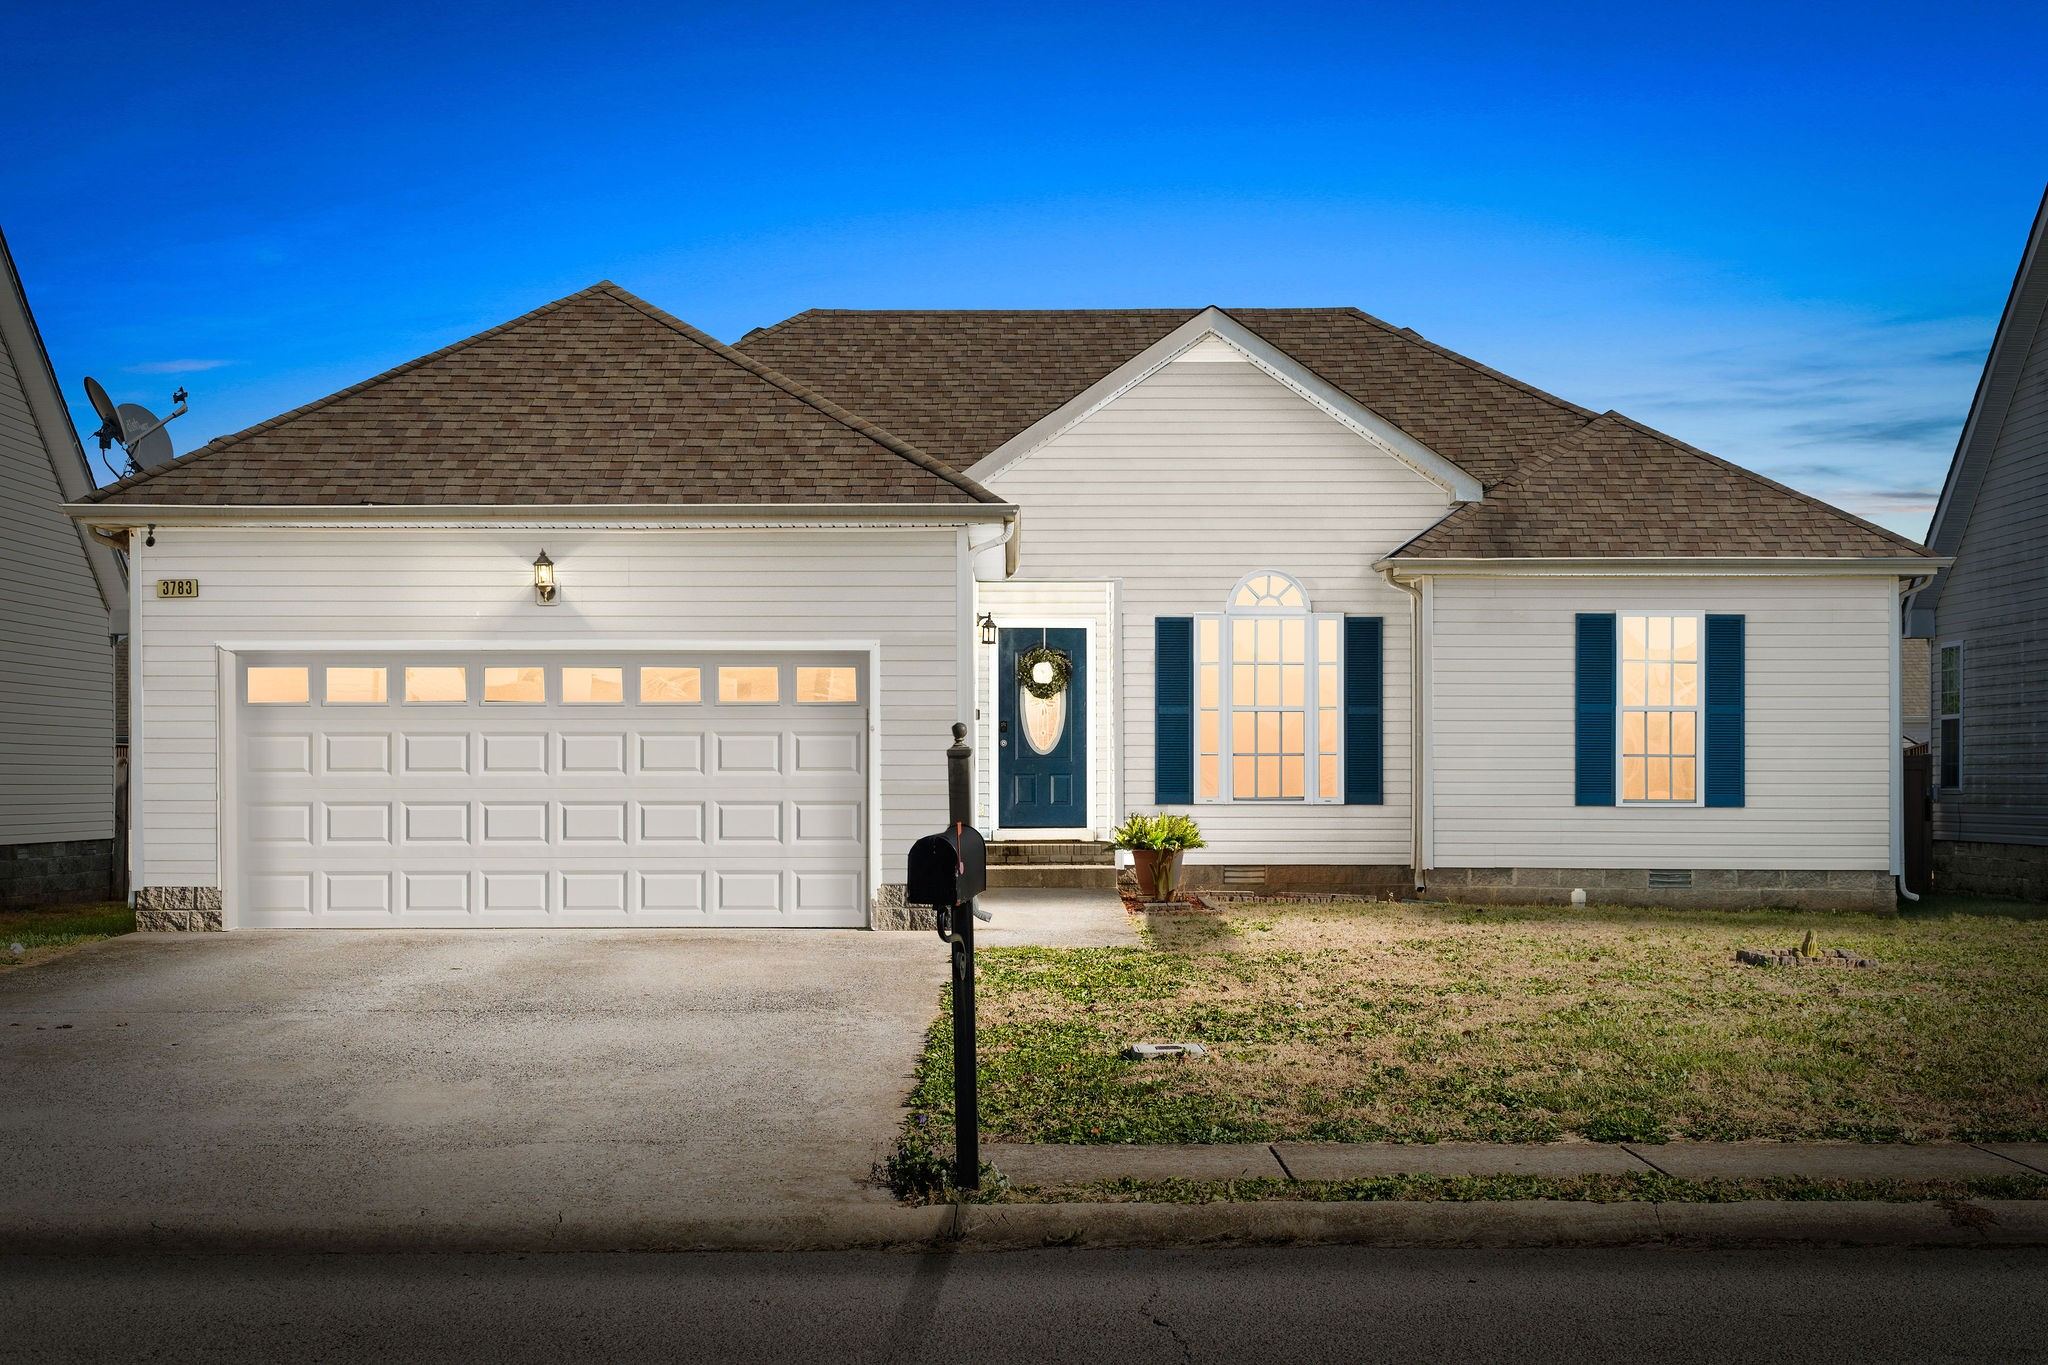 3783 Cindy Jo Dr N Property Photo - Clarksville, TN real estate listing